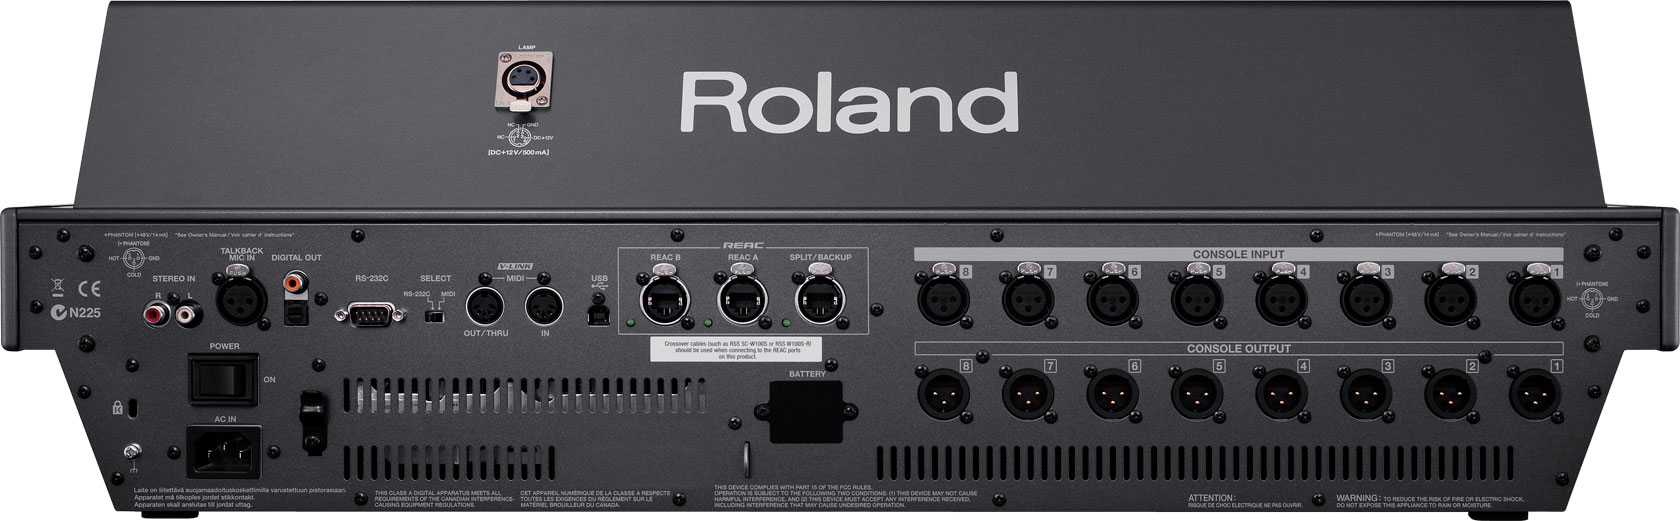 Hear Technologies Hookup Diagrams Stereo Live 16 Channels Of Roland Pro A V M 480 48 Channel Digital Mixing Console